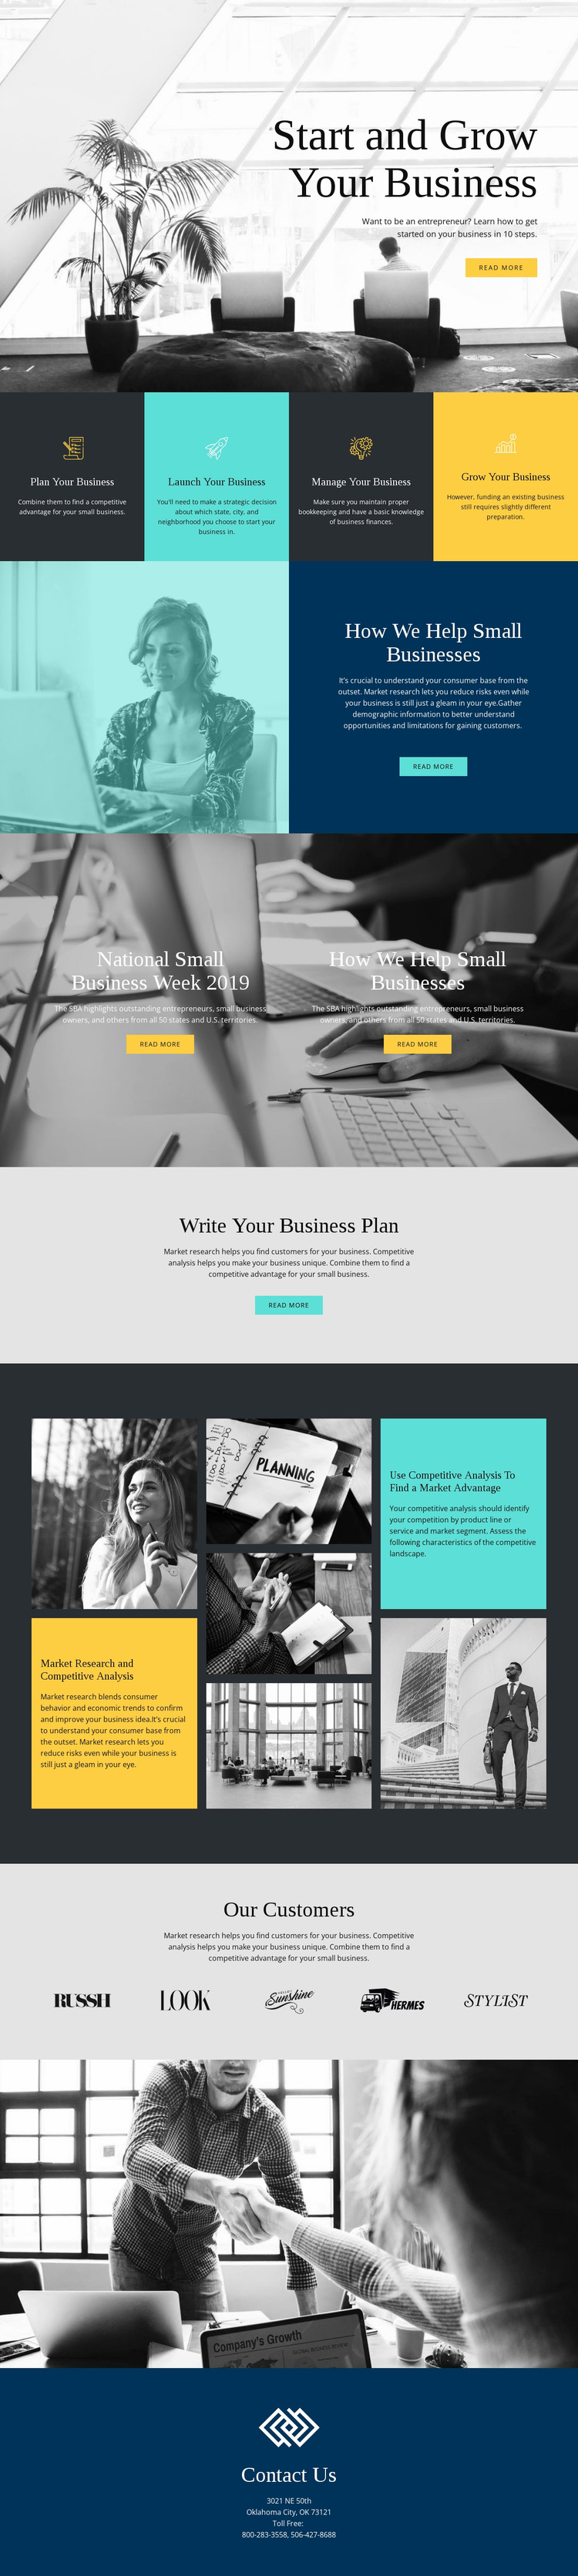 Start and grow your business Website Builder Templates